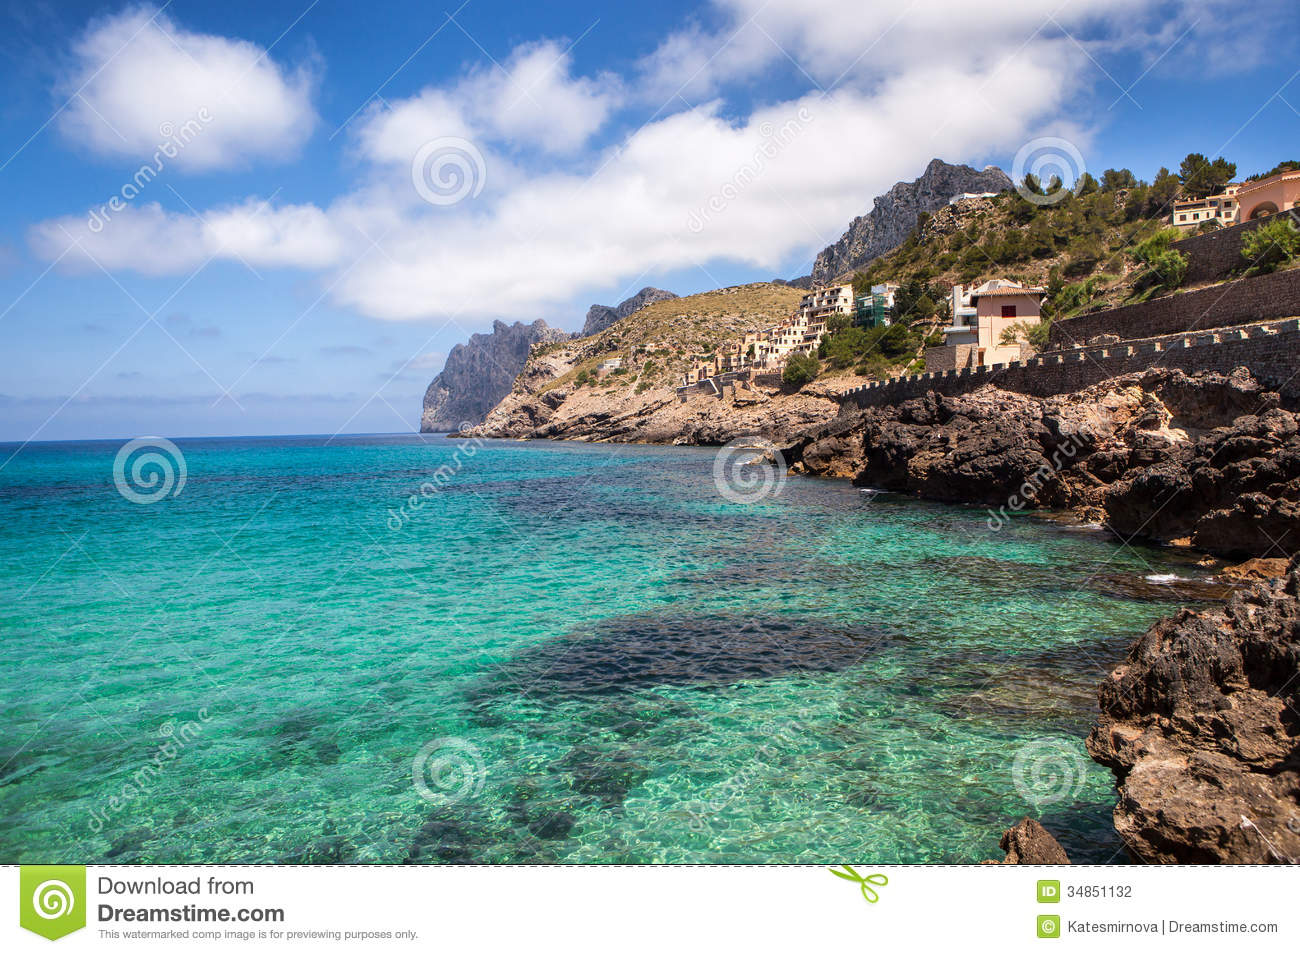 Blue Lagoon Coast Mallorca Stock Photos, Images, & Pictures.